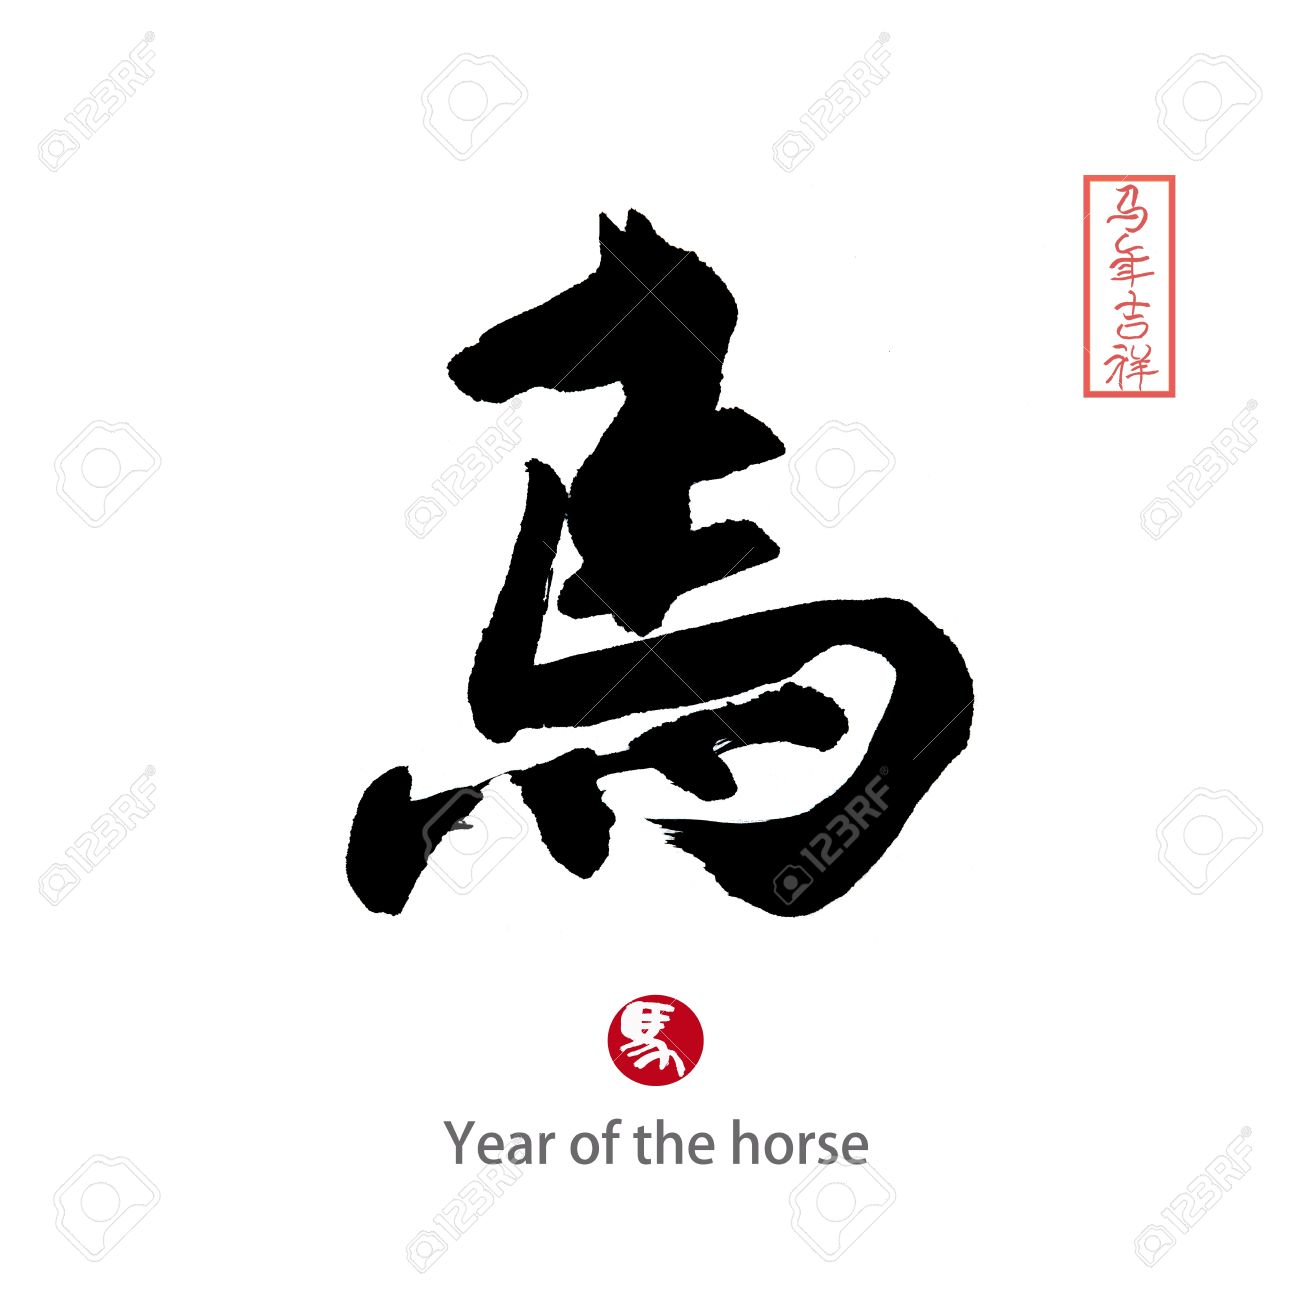 2014 is year of the horsechinese calligraphy word for horse 2014 is year of the horsechinese calligraphy word for biocorpaavc